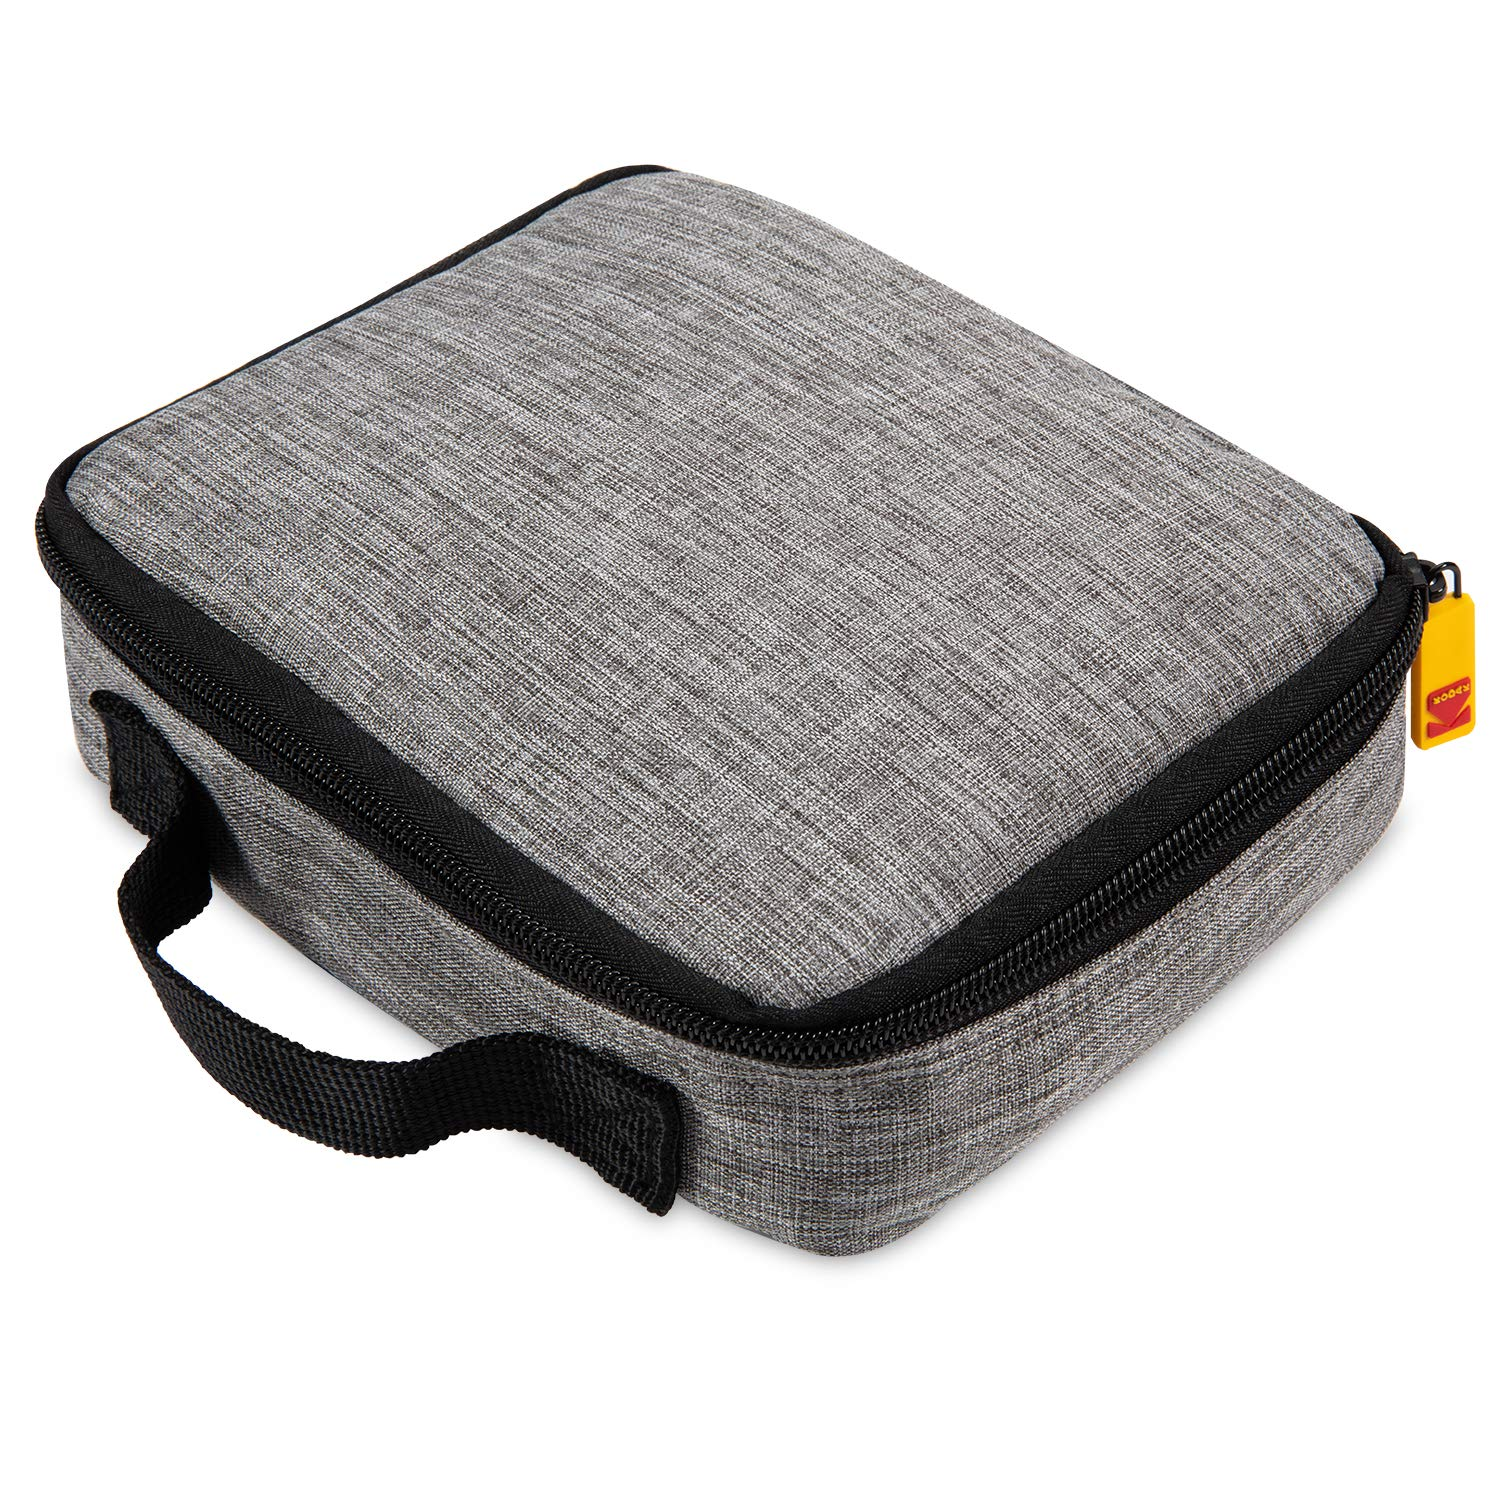 Kodak Luma Projector Case - Kodak Case Also Features Easy Carry Handle & Adjustable Pockets for DIY Customization by KODAK